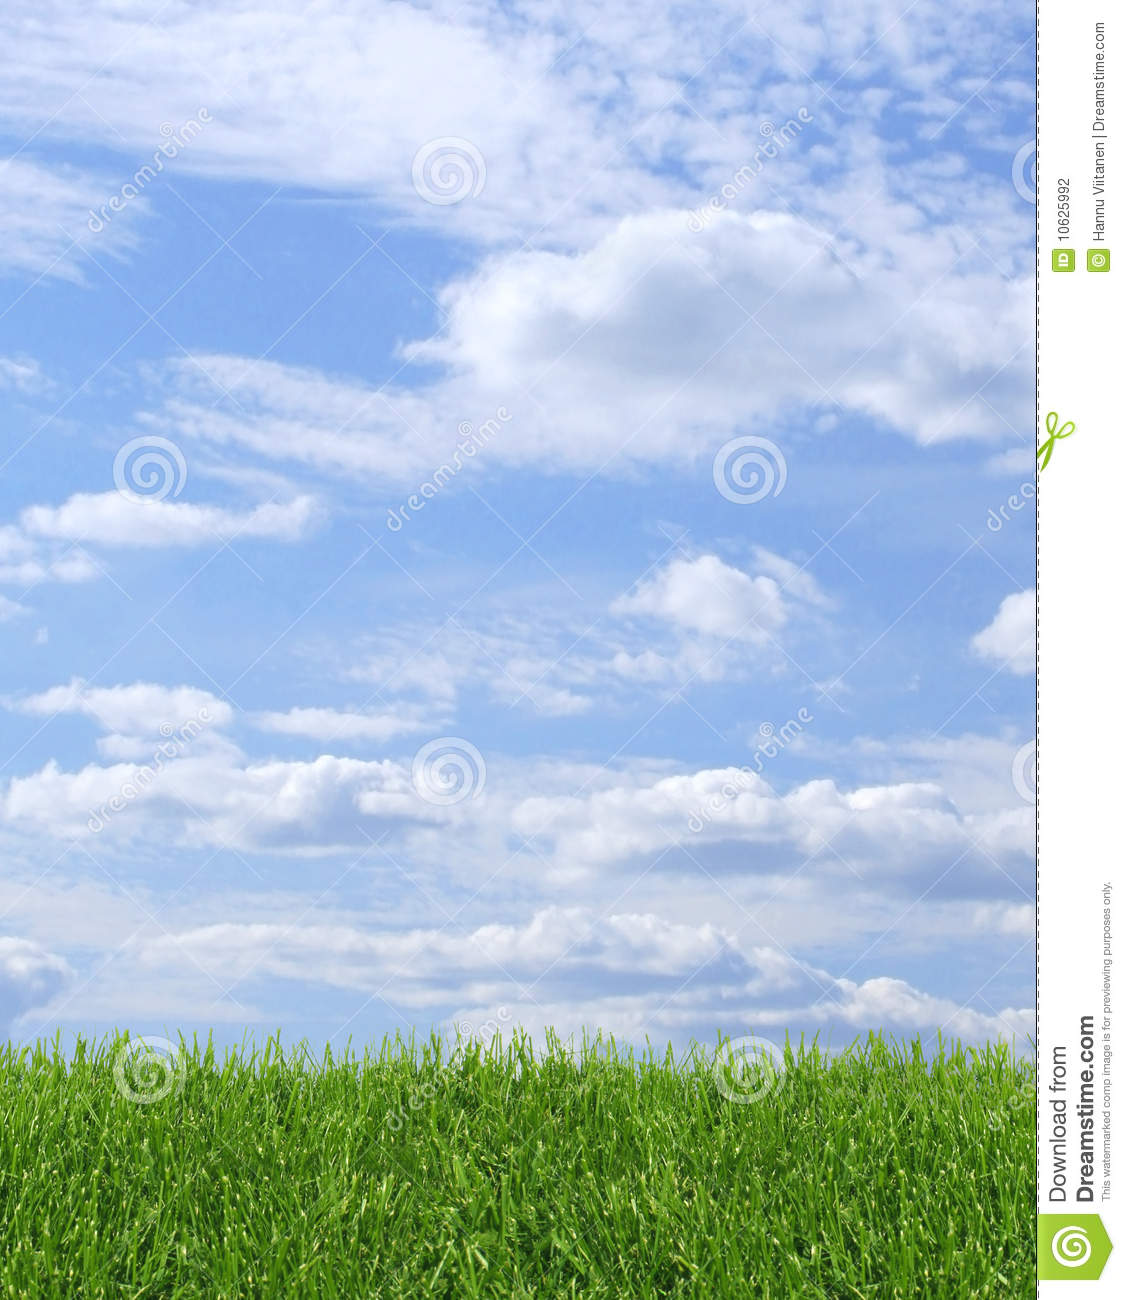 Green Grass Blue Sky Background Stock Photography - Image ...